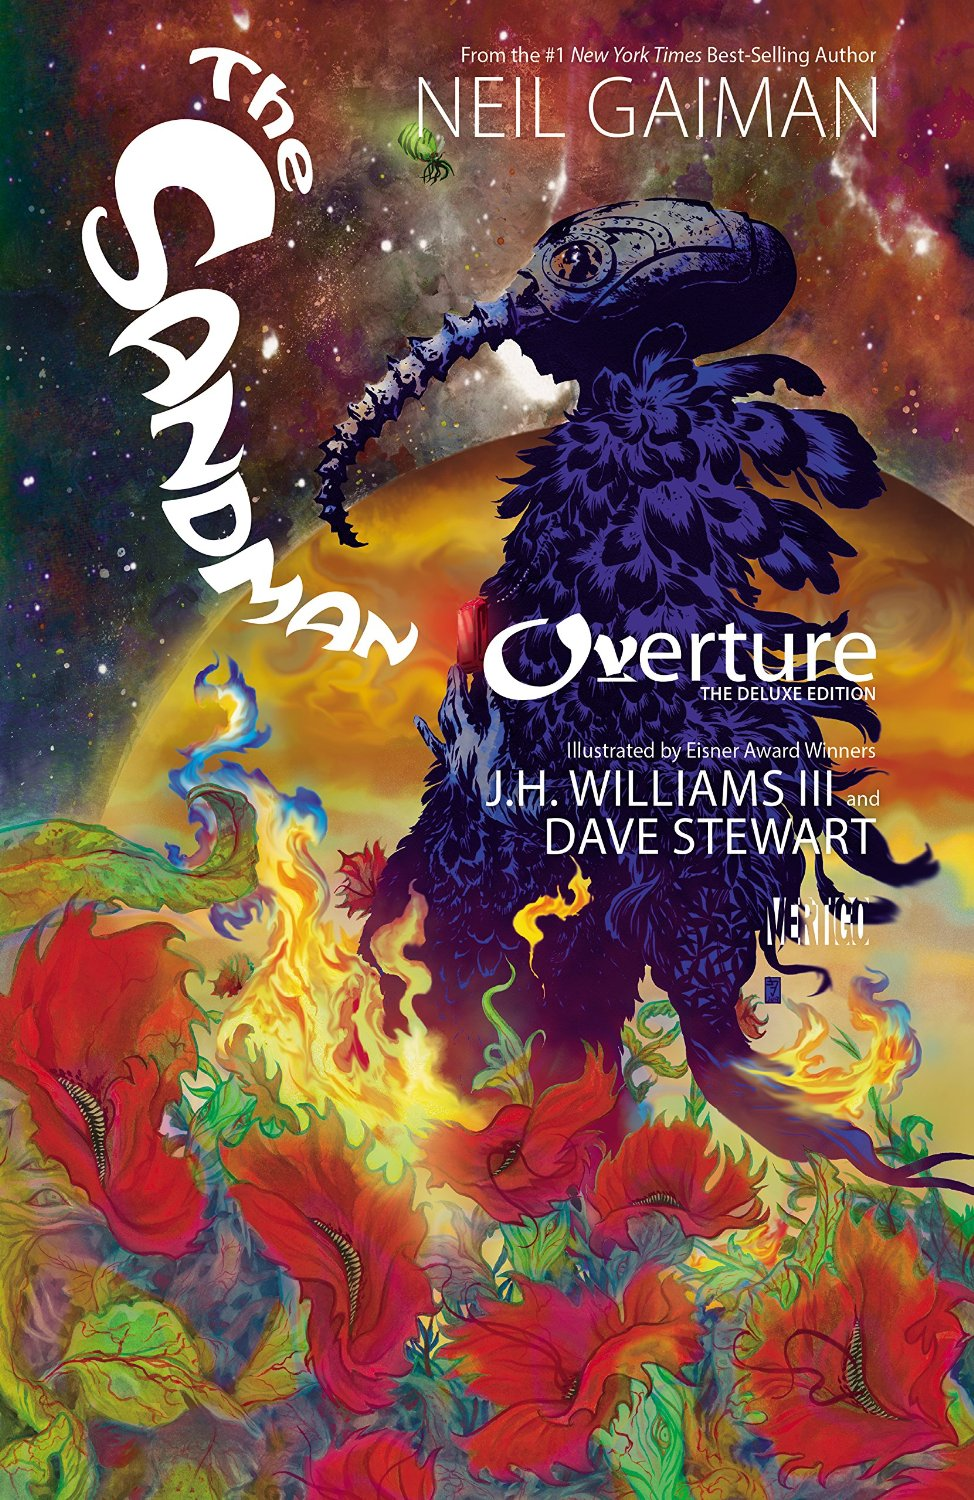 The Sandman Overture Deluxe Edition (Collected)